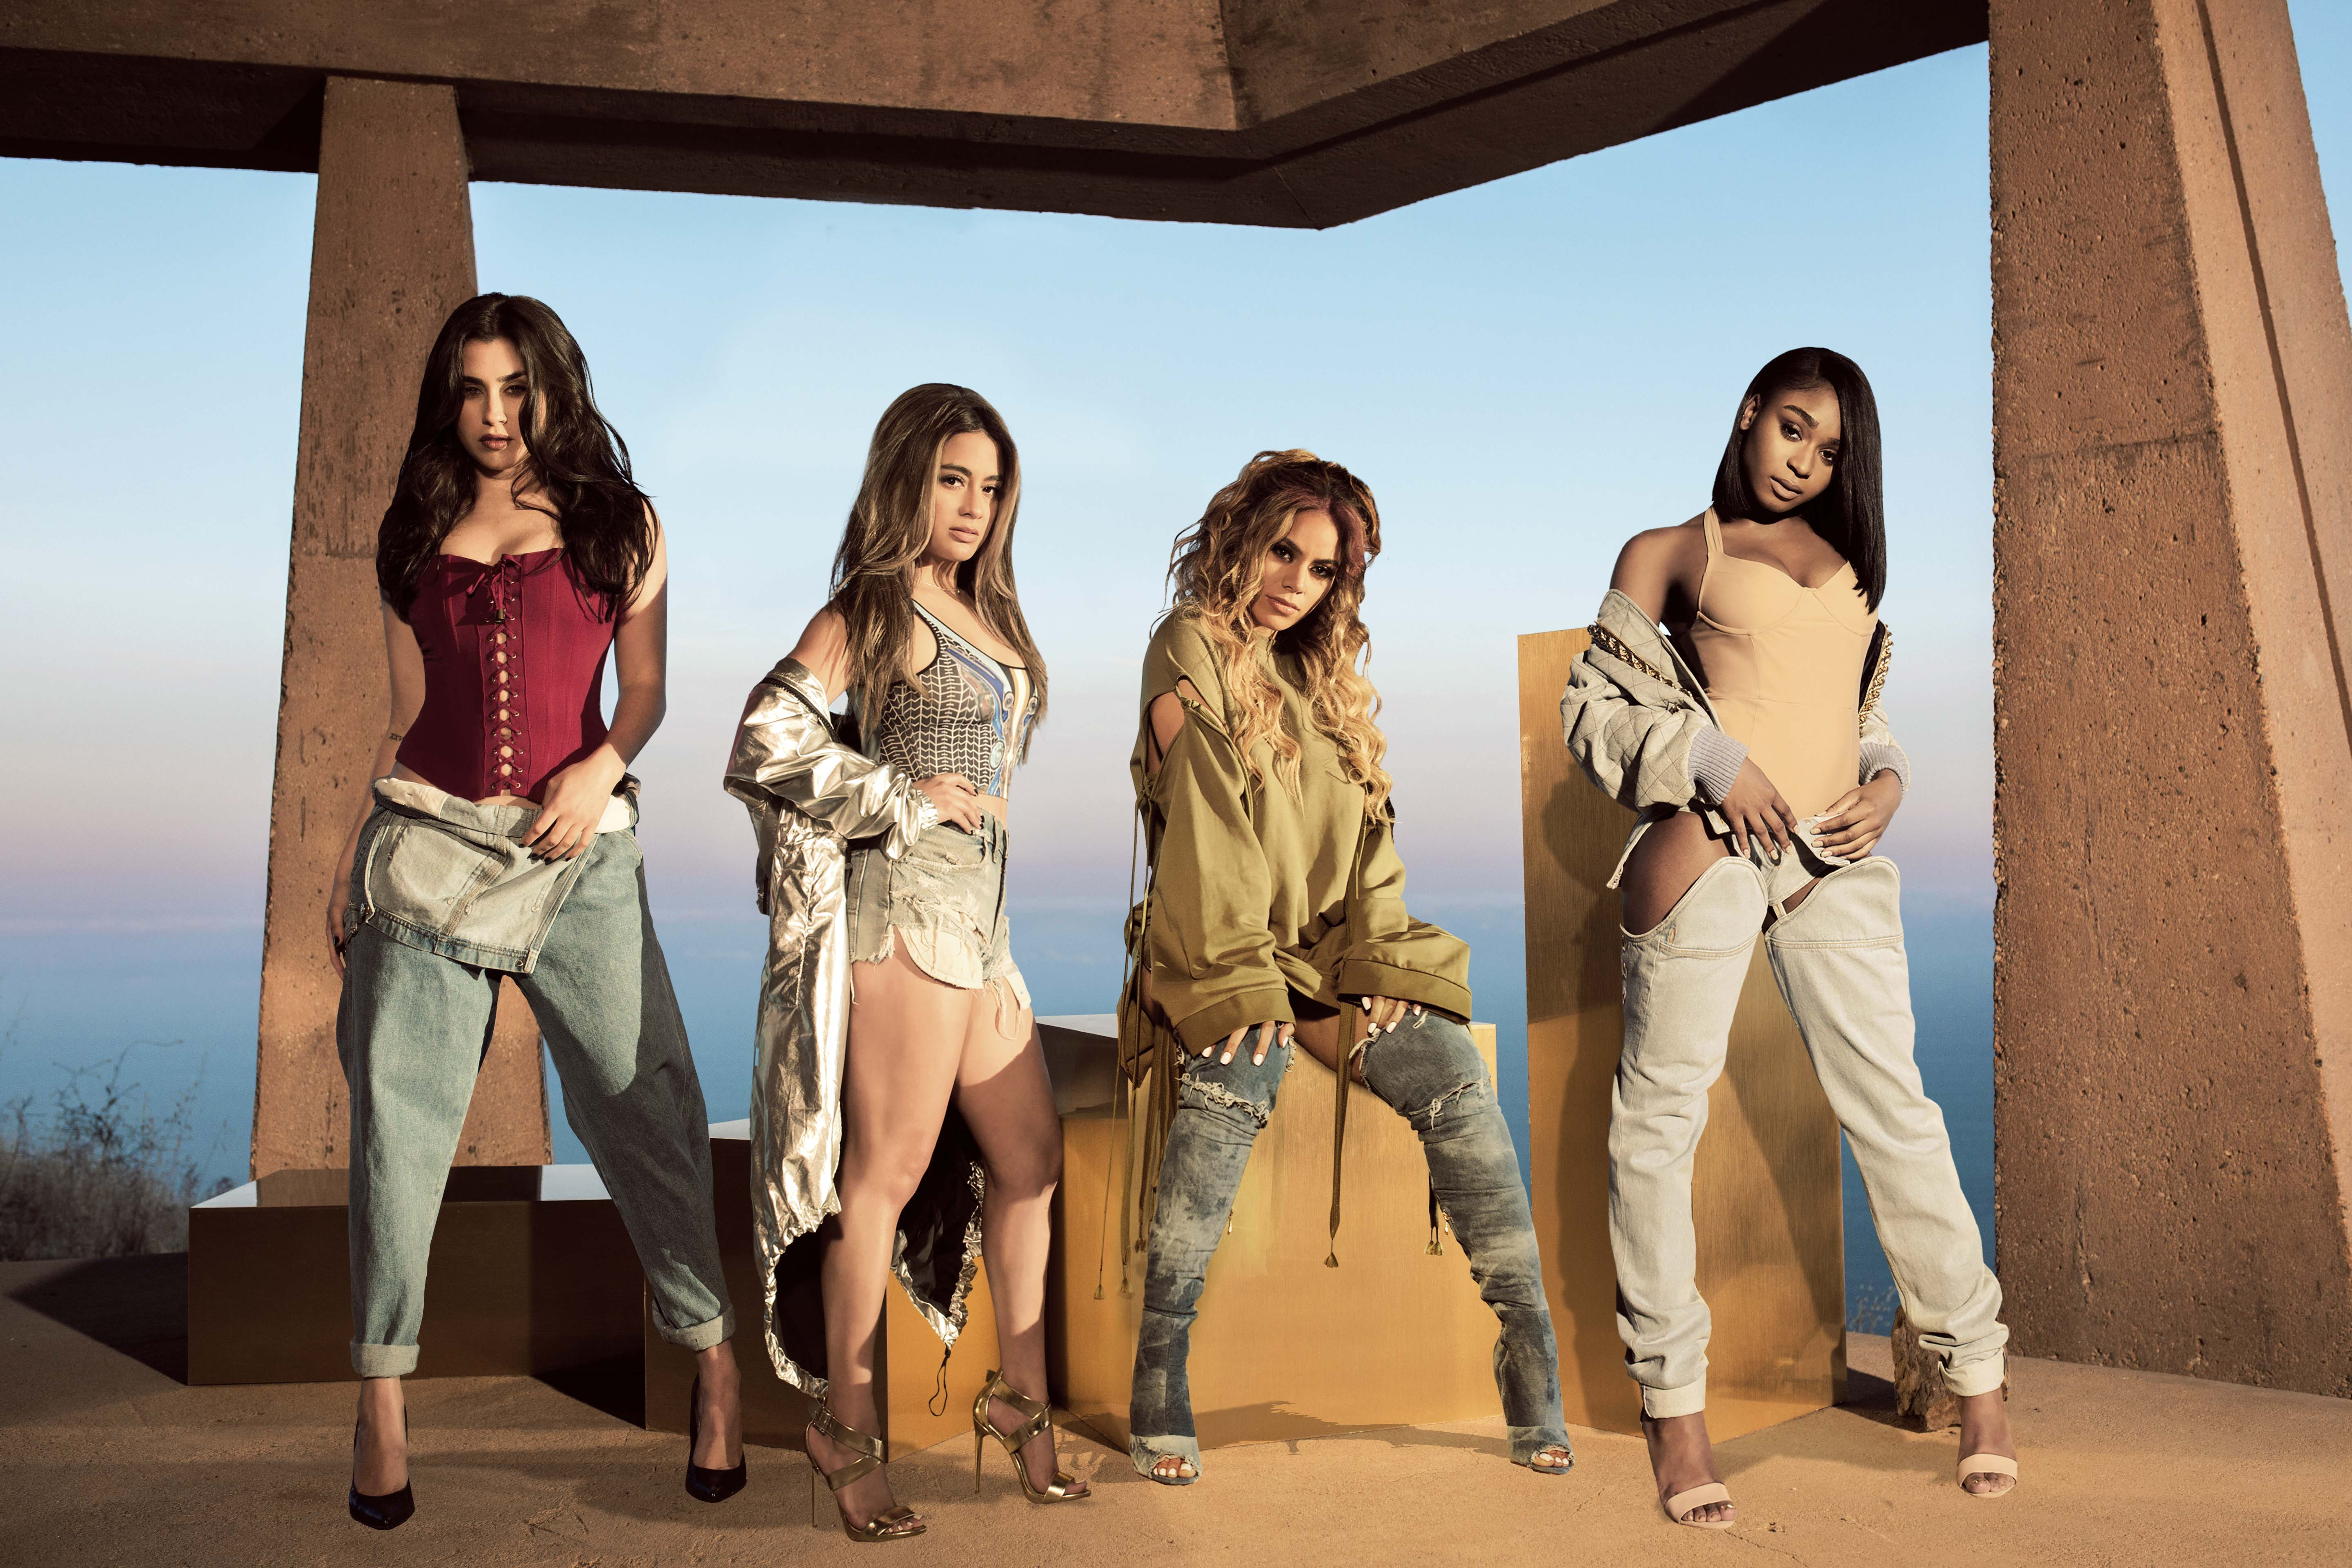 Wallpapers Fifth Harmony, Ally Brooke, Normani Kordei, Dinah Jane